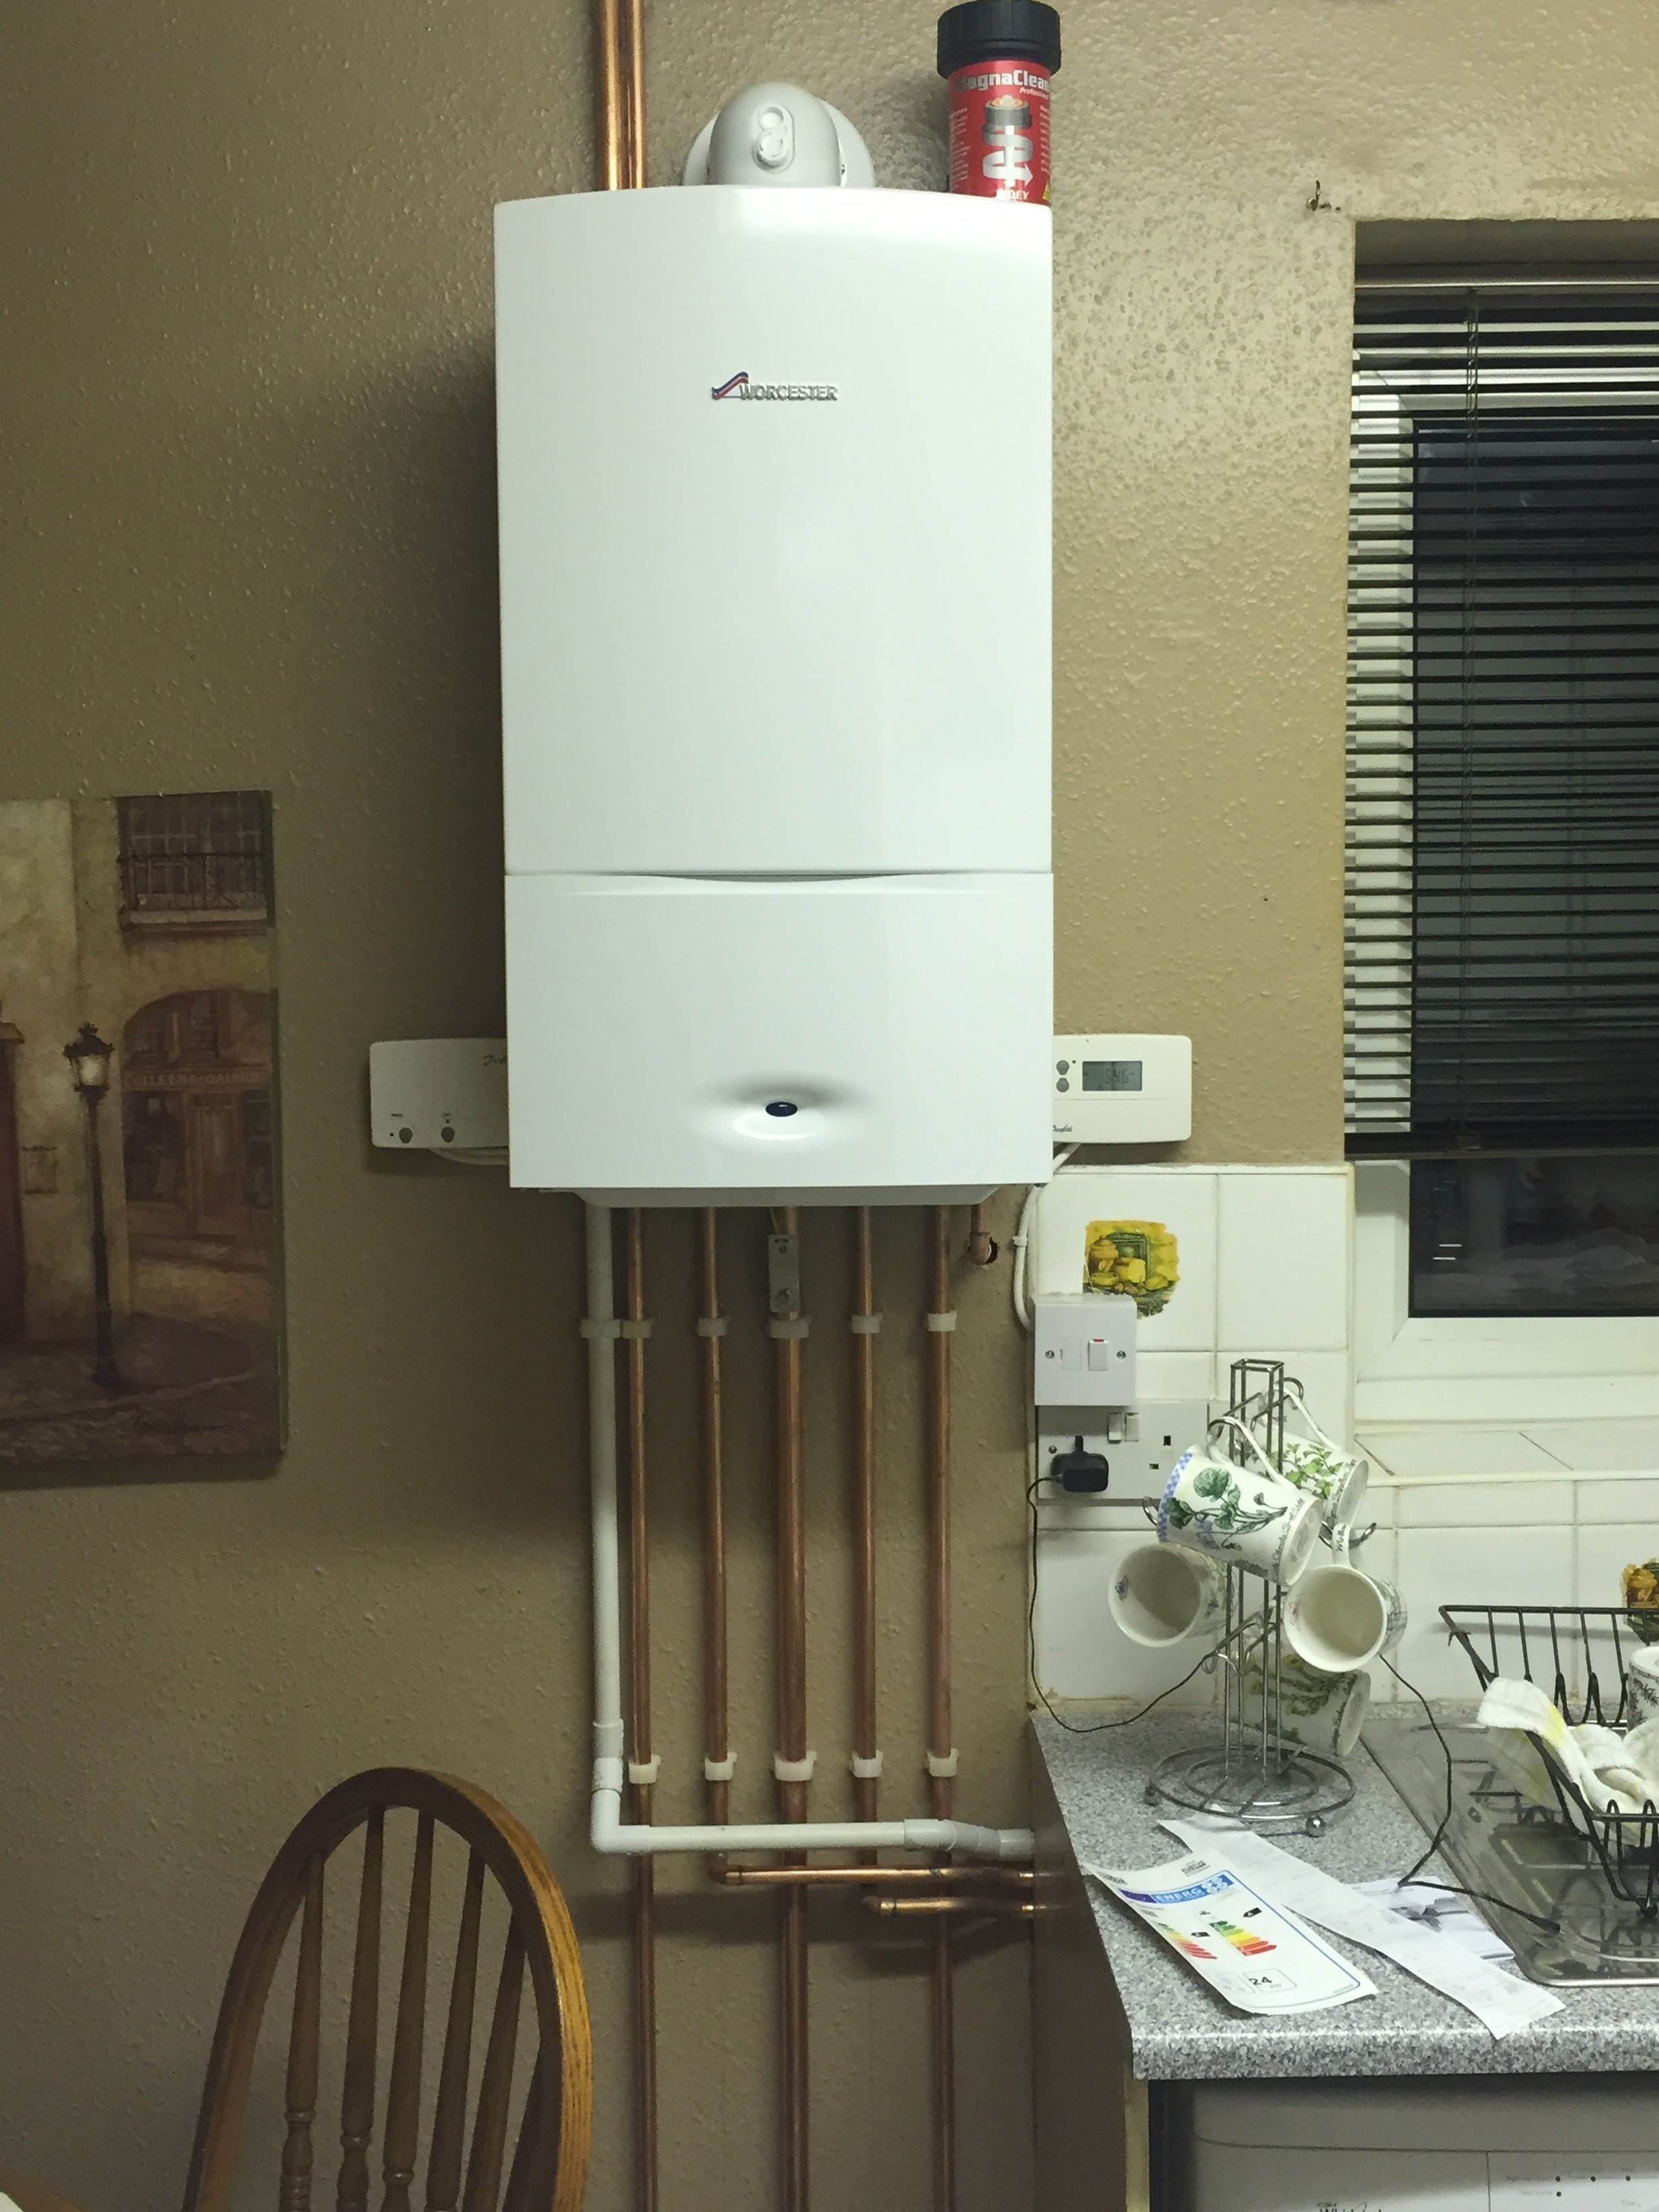 How Much Does A New Boiler Cost >> 2020 New Combi Boiler Prices Costs How Much Does A New